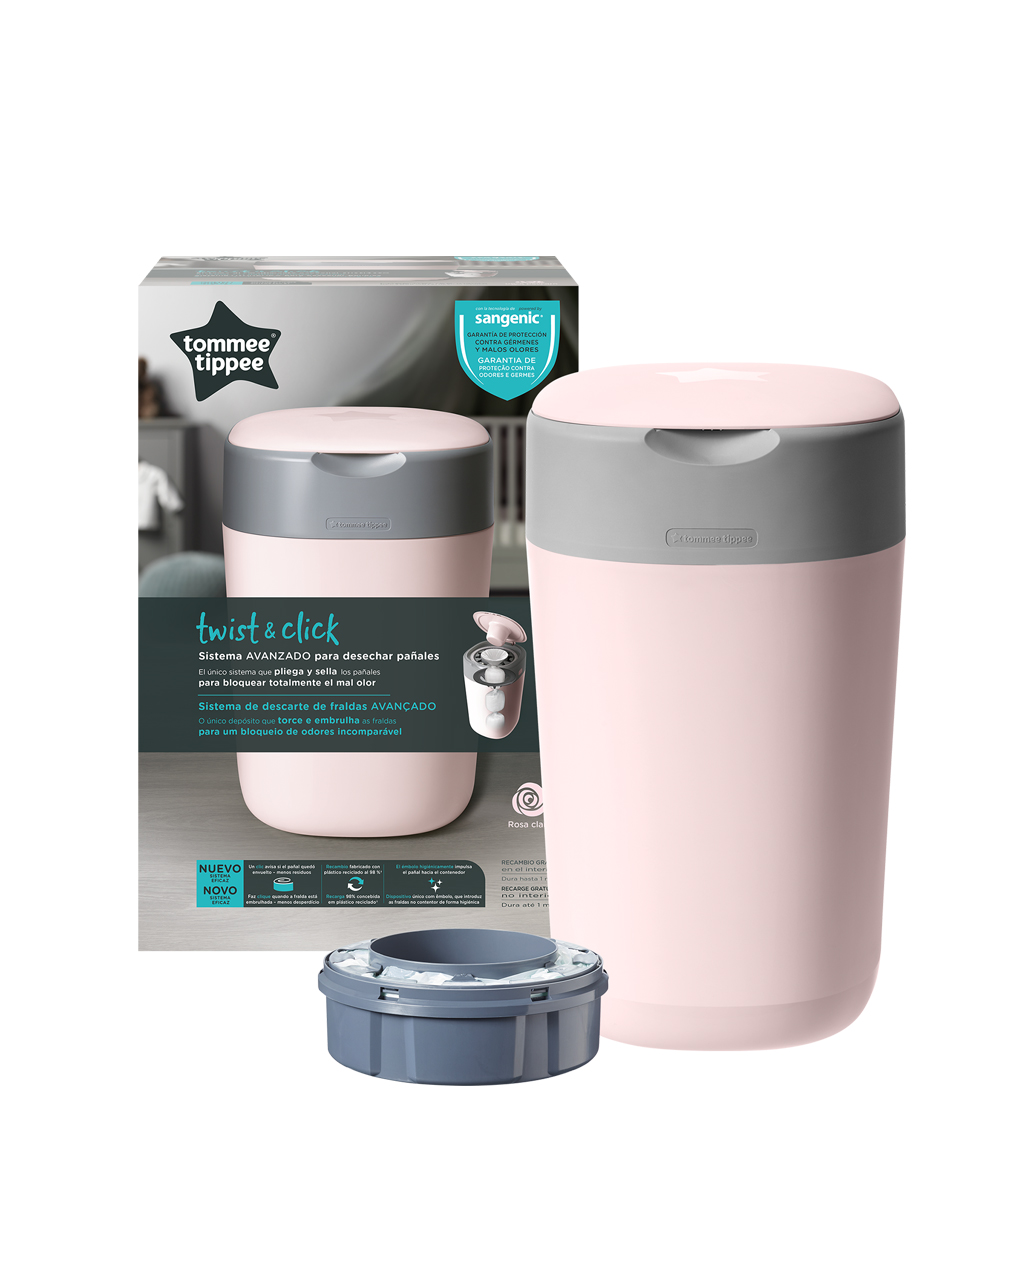 Twist&click contenitore rosa - Tommee Tippee